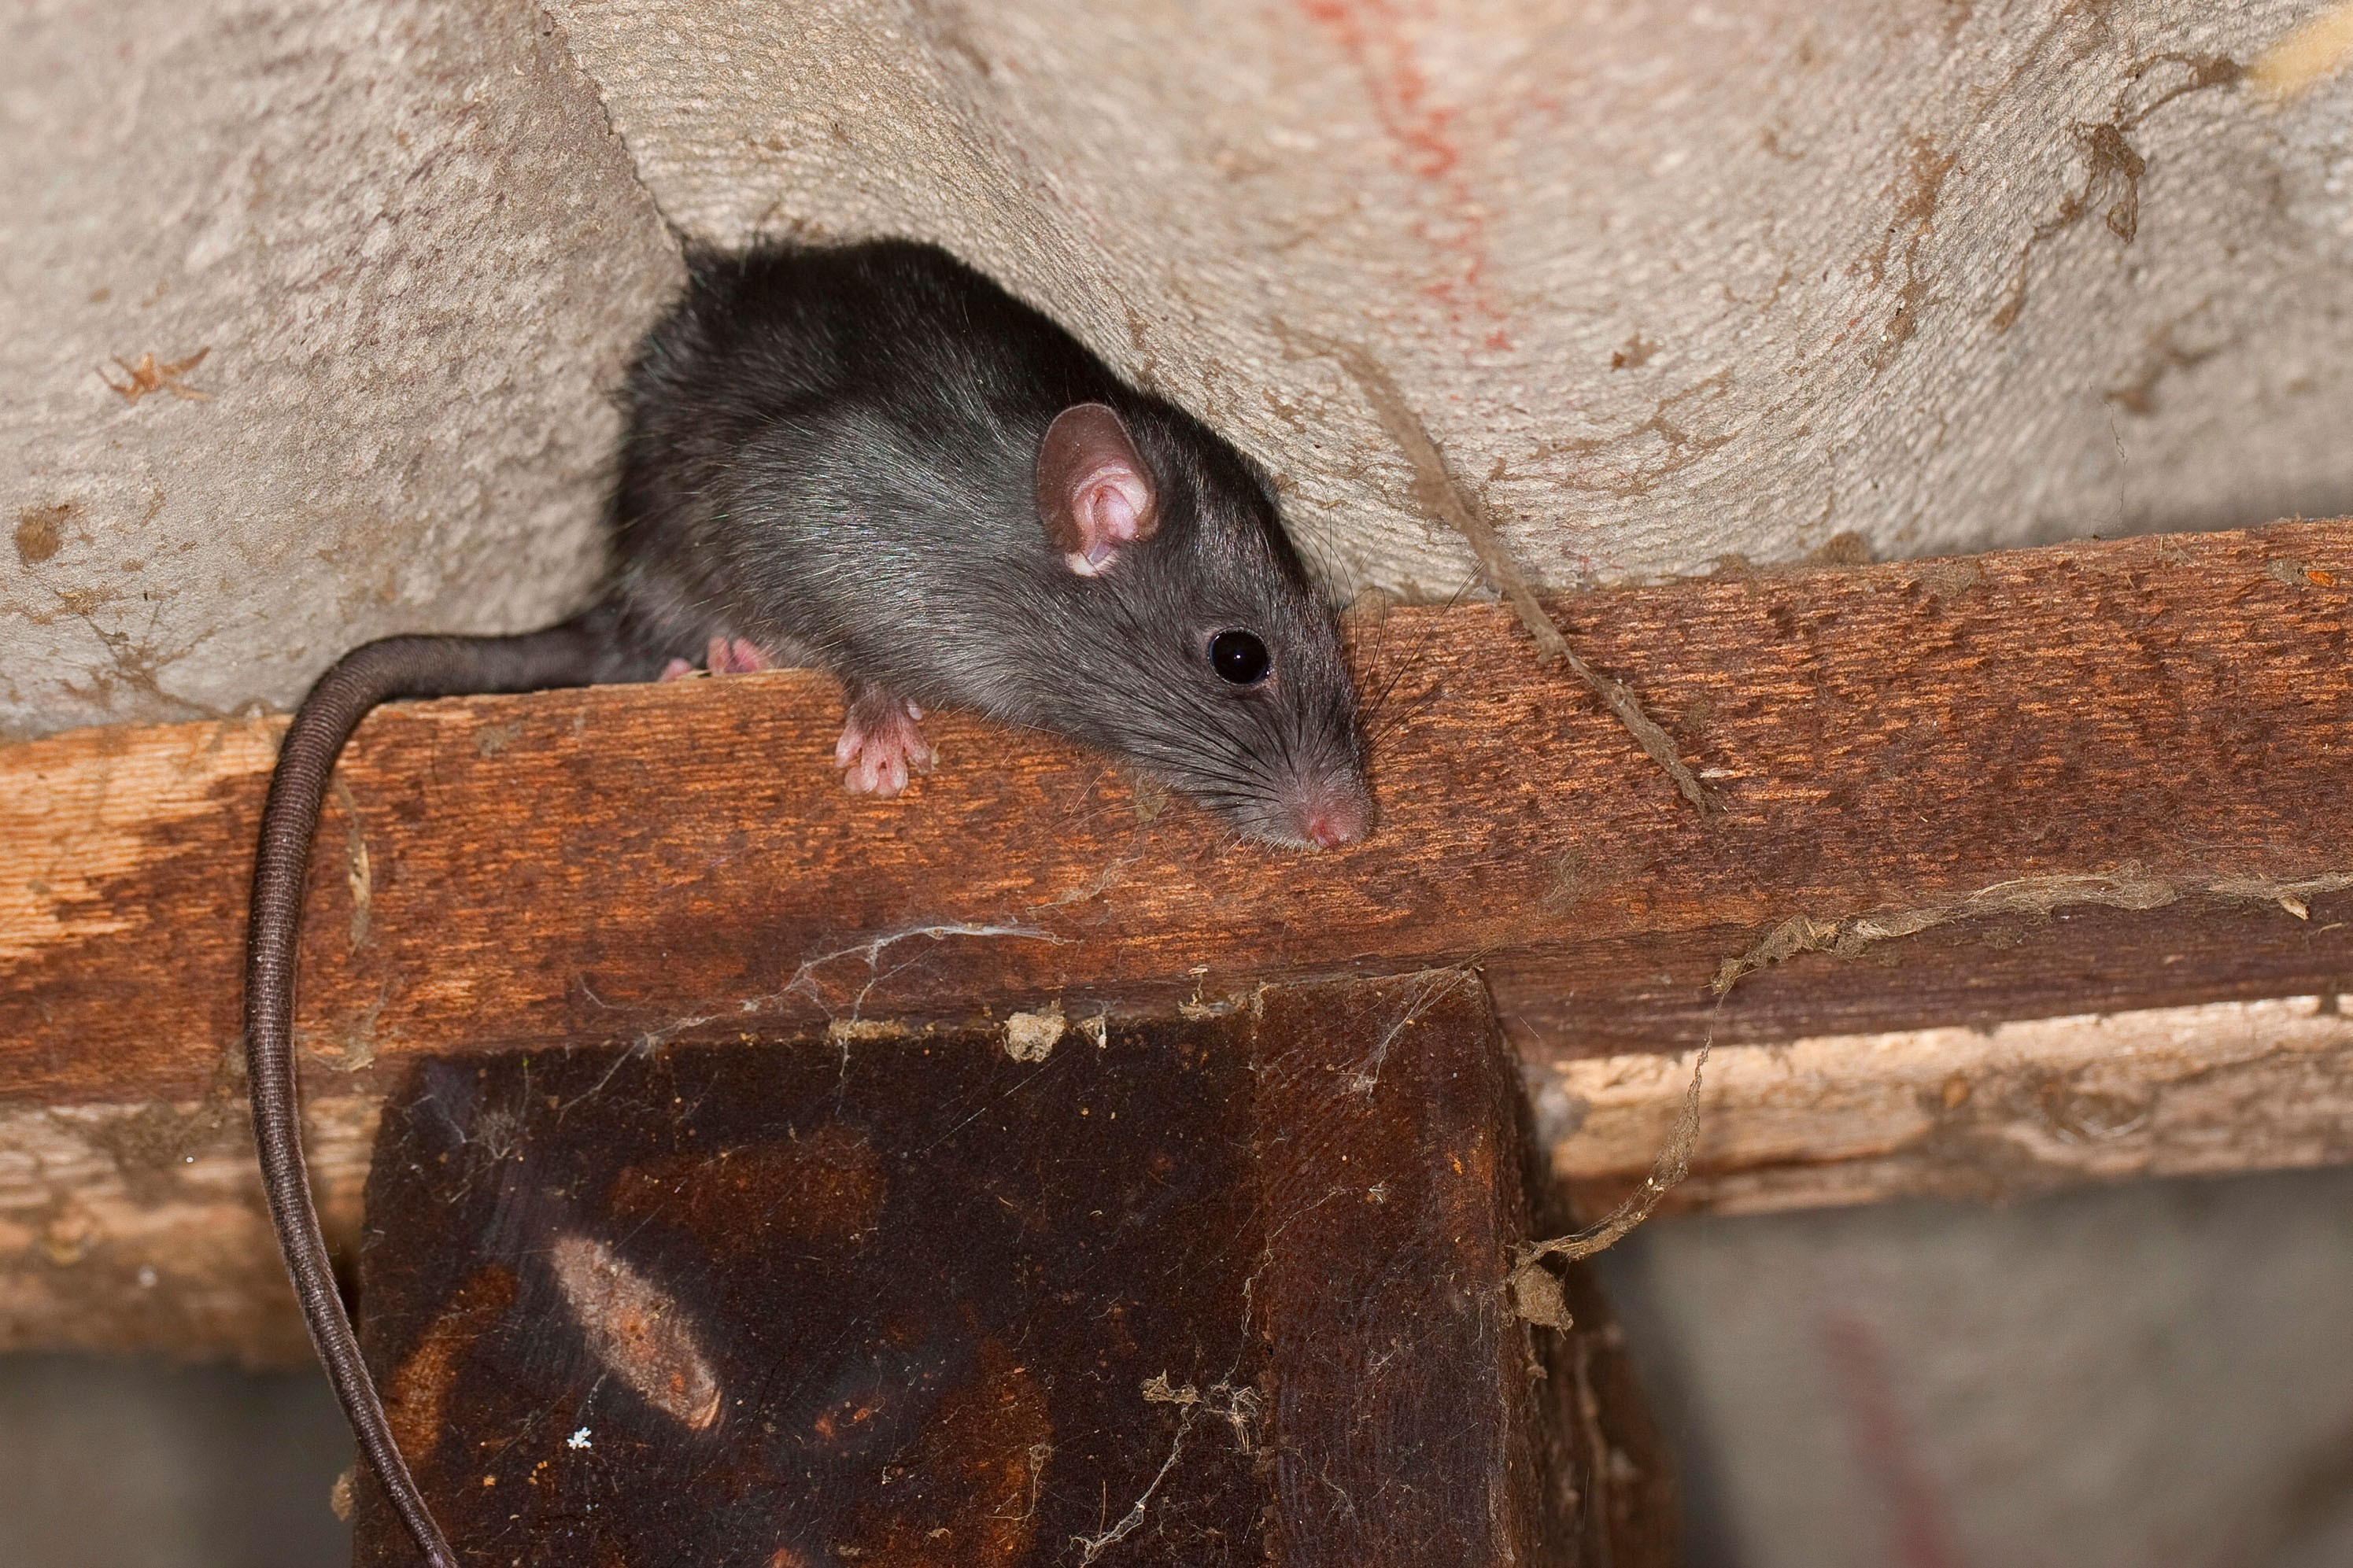 Click To Enlarge Terminix Says Roof Rats Often Climb Wires To Gain Access  To Homes.   TERNINIX